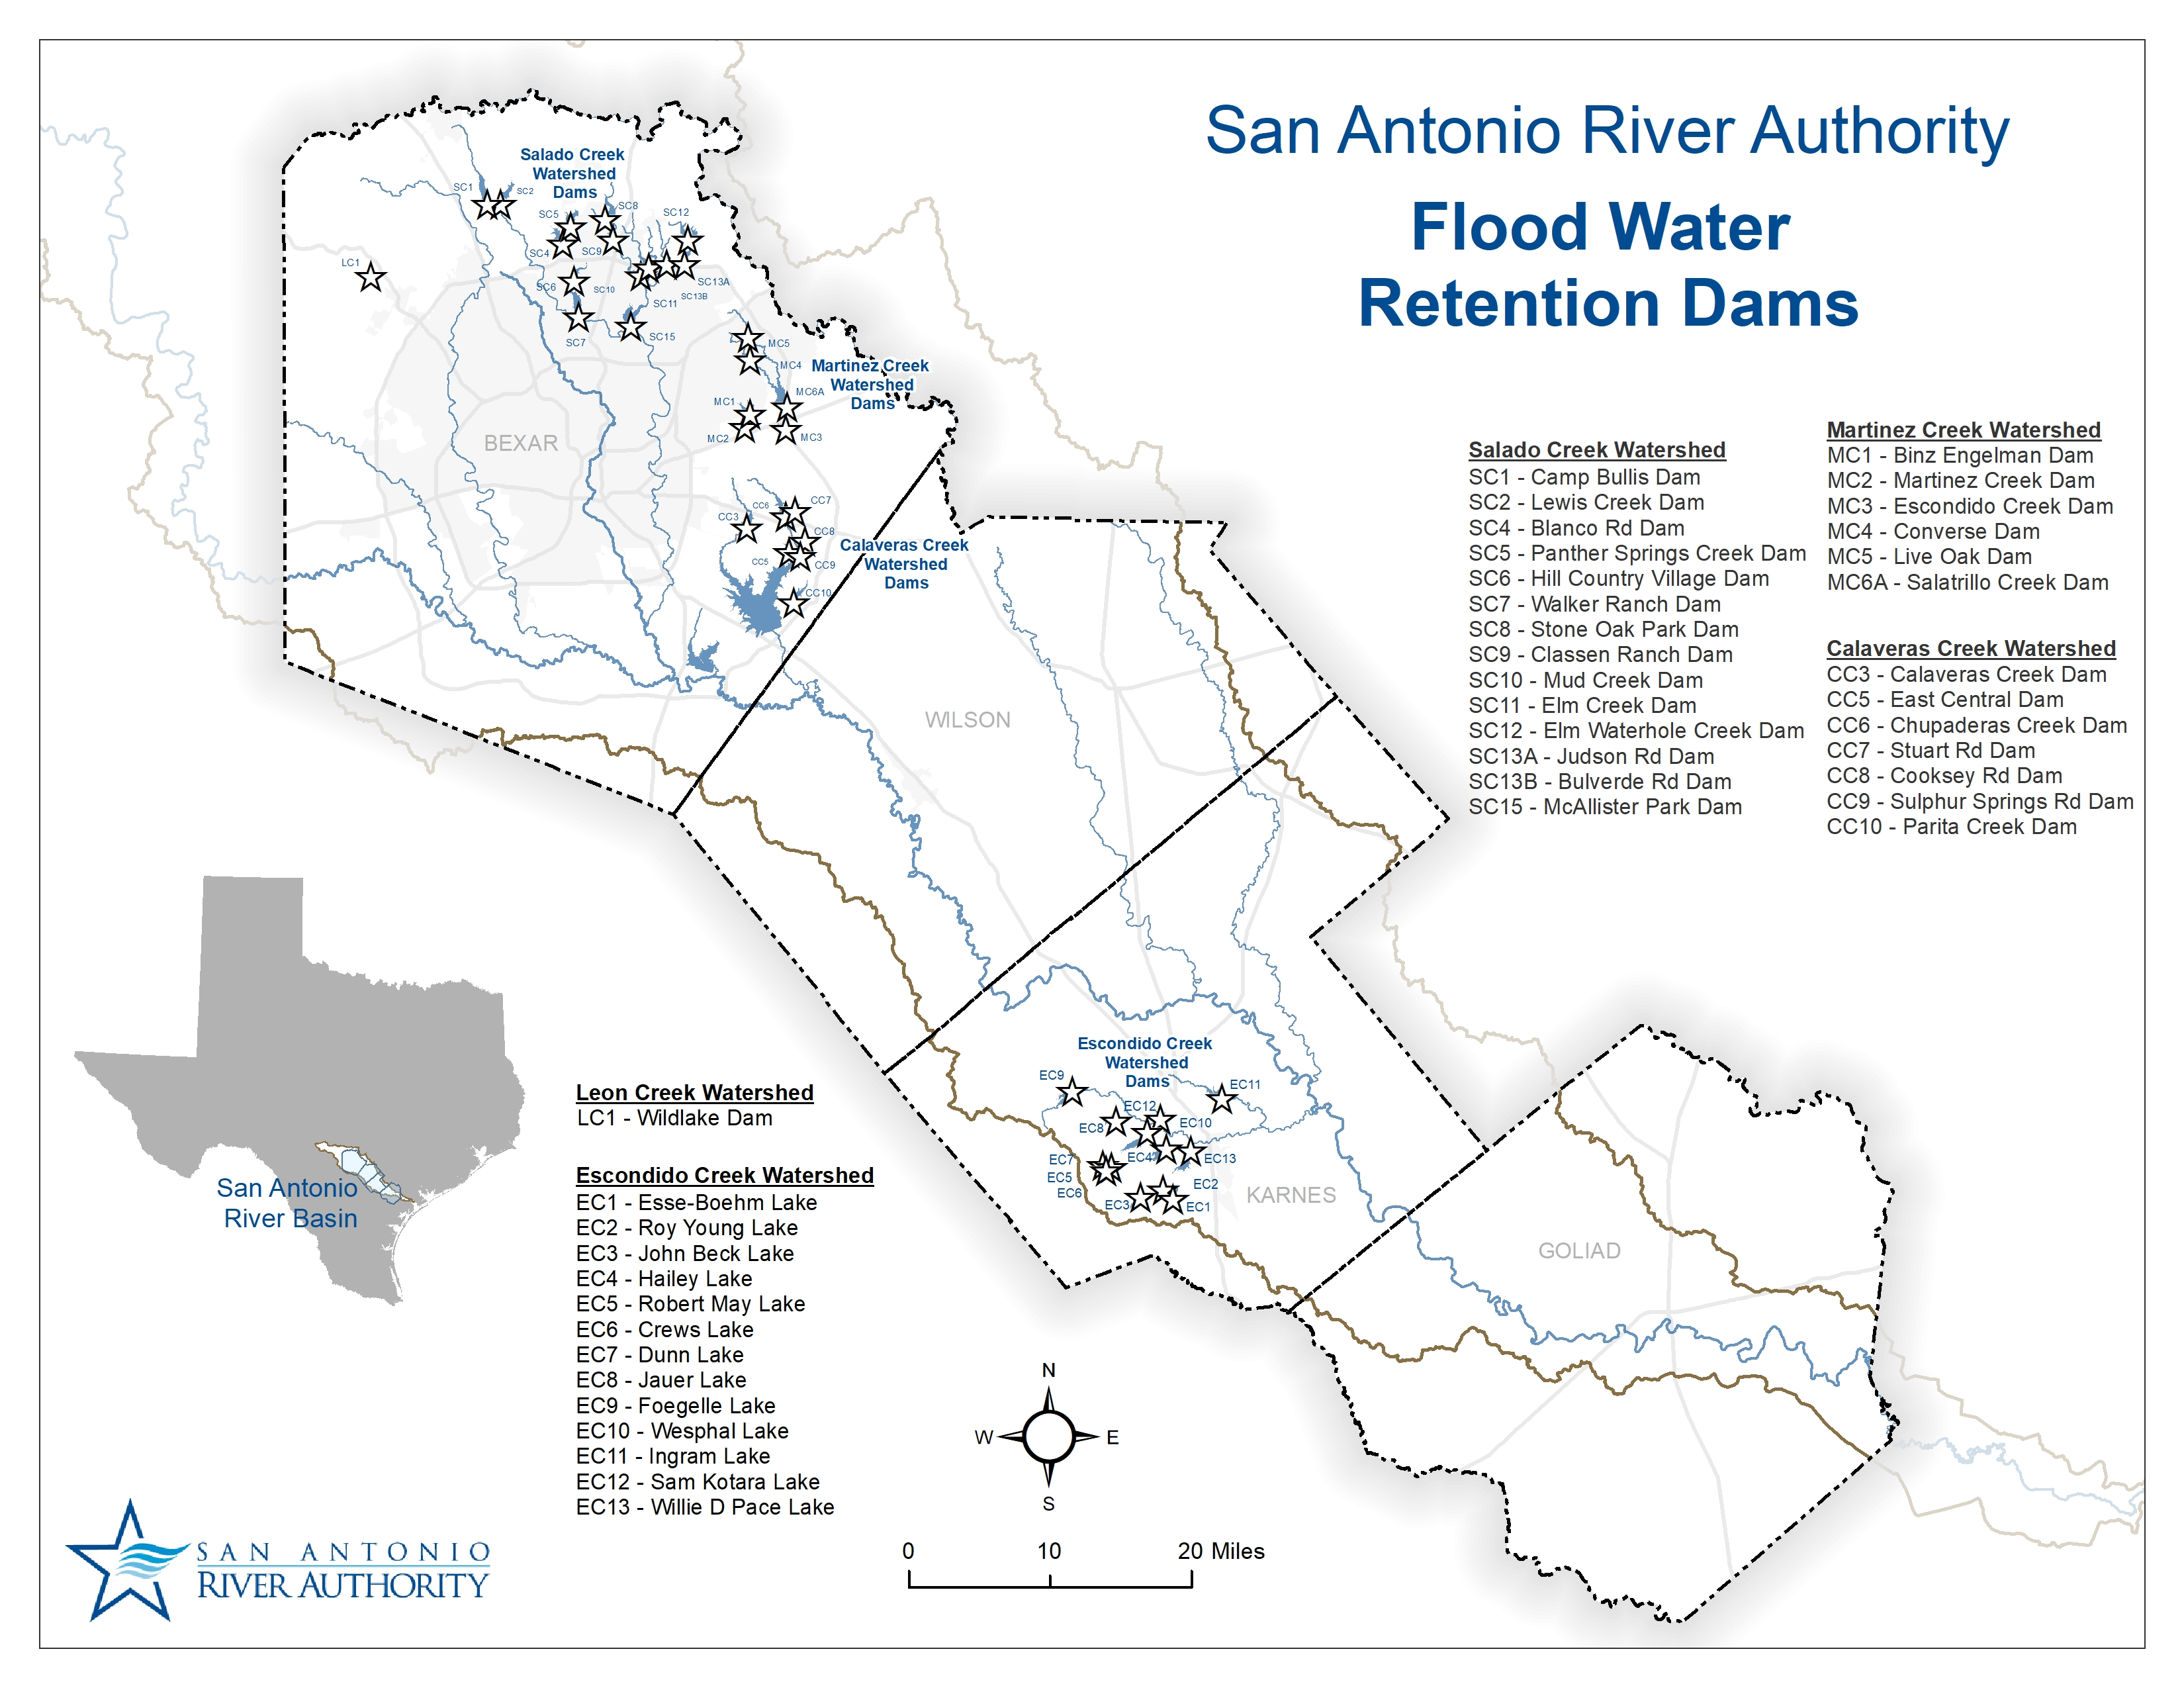 San Antonio River Authority Flood Water Retention Dams